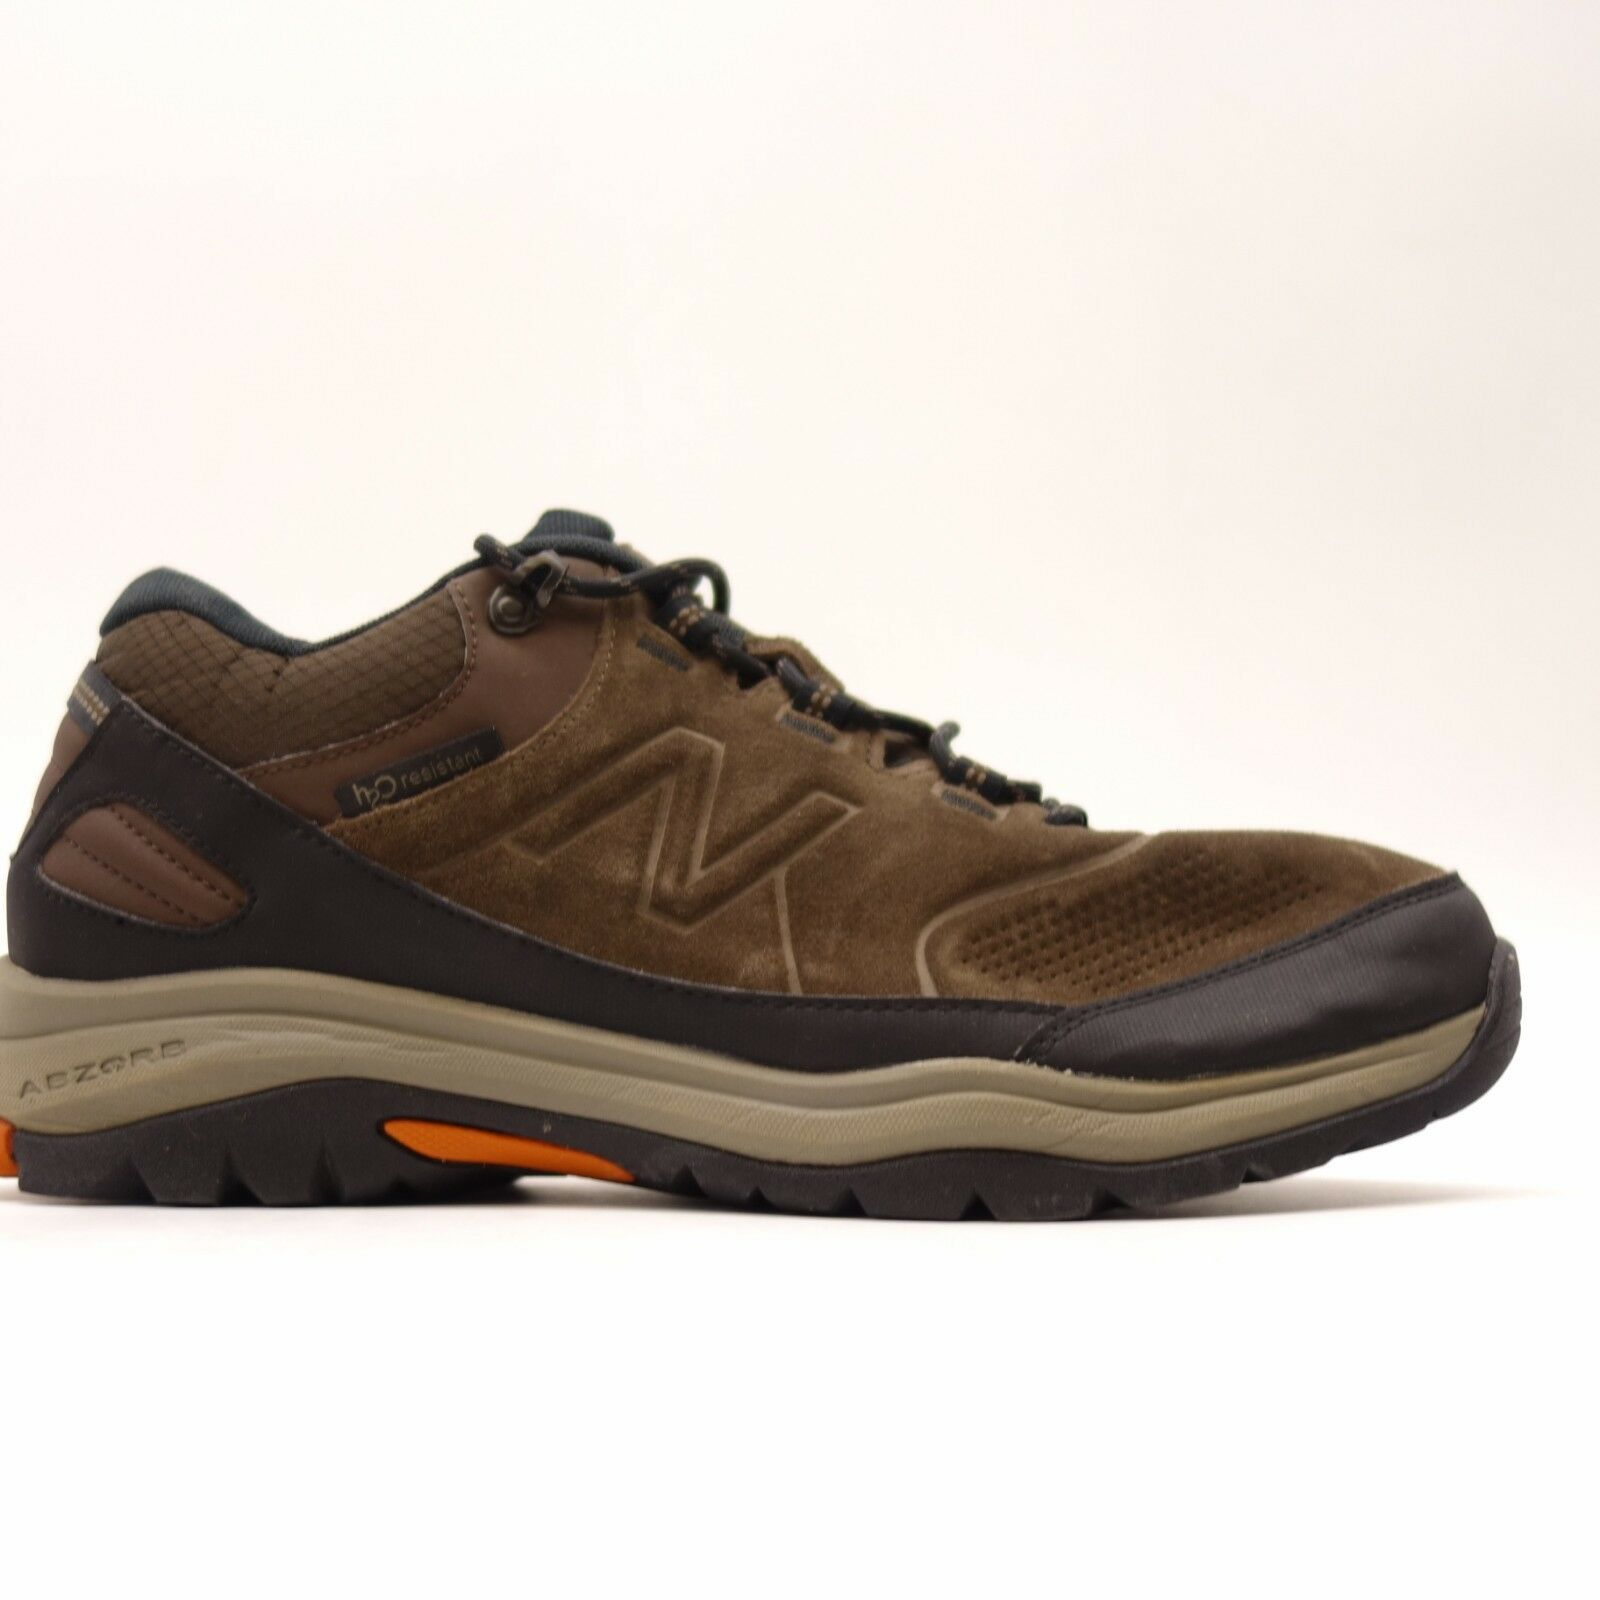 New Balance Mens 779v1 Suede Leather Athletic Health Walking shoes Size 12